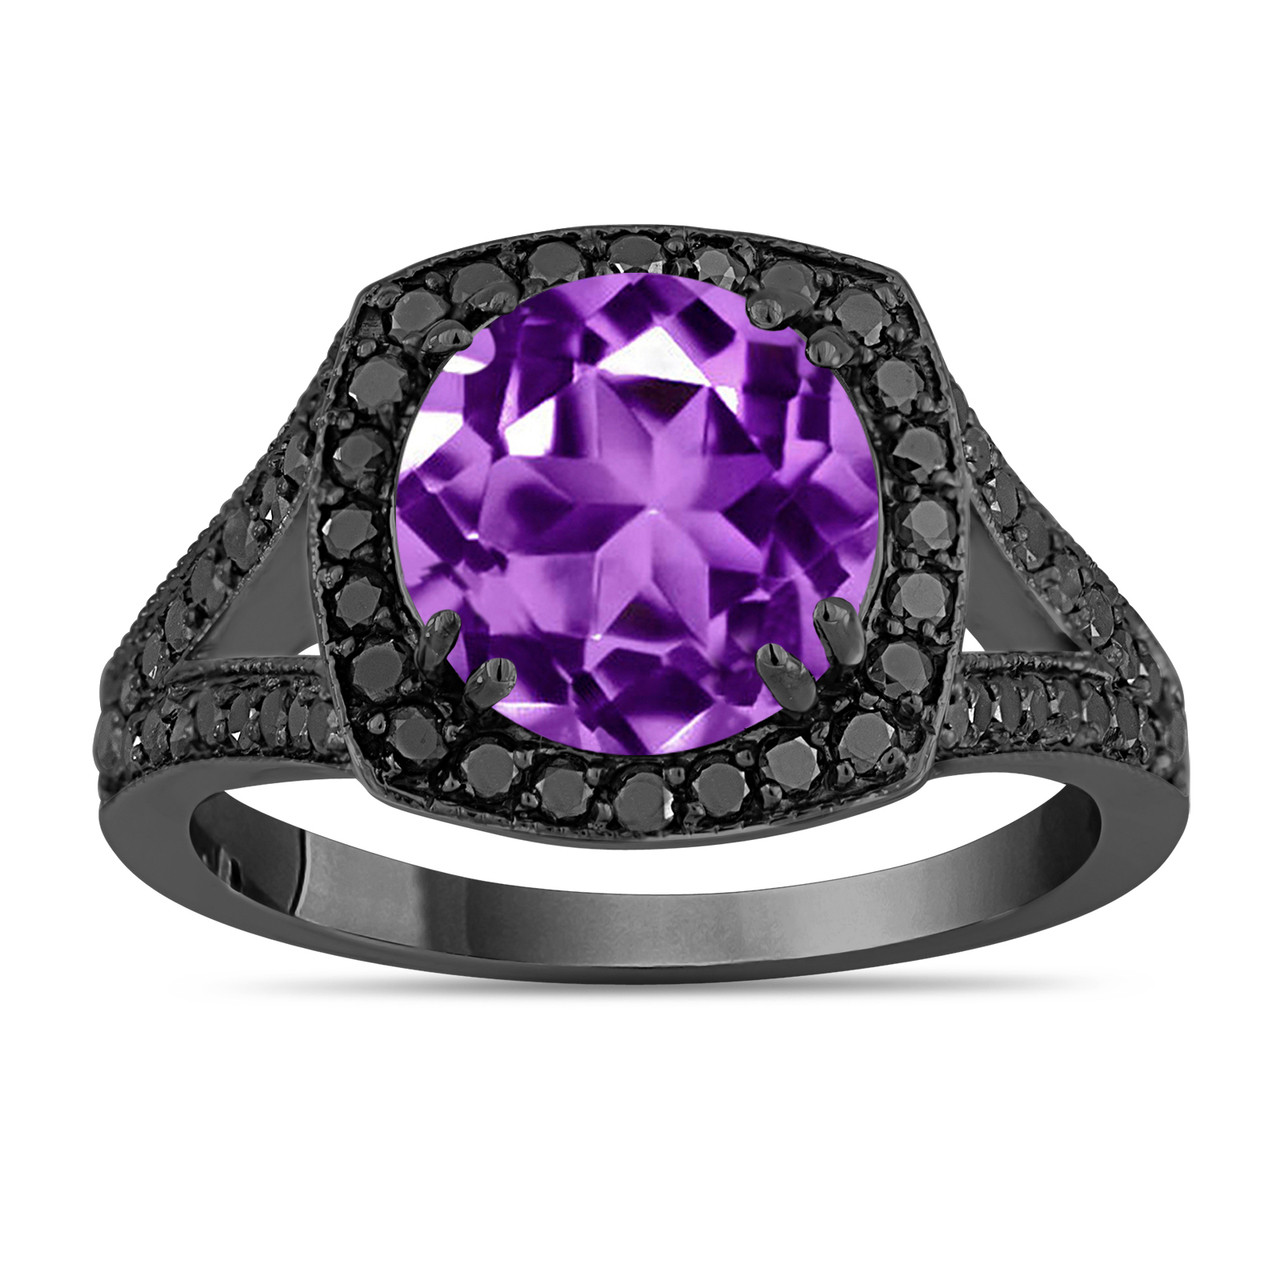 04 Carat Bands: 3.04 Carat Purple Amethyst Engagement Ring, With Black